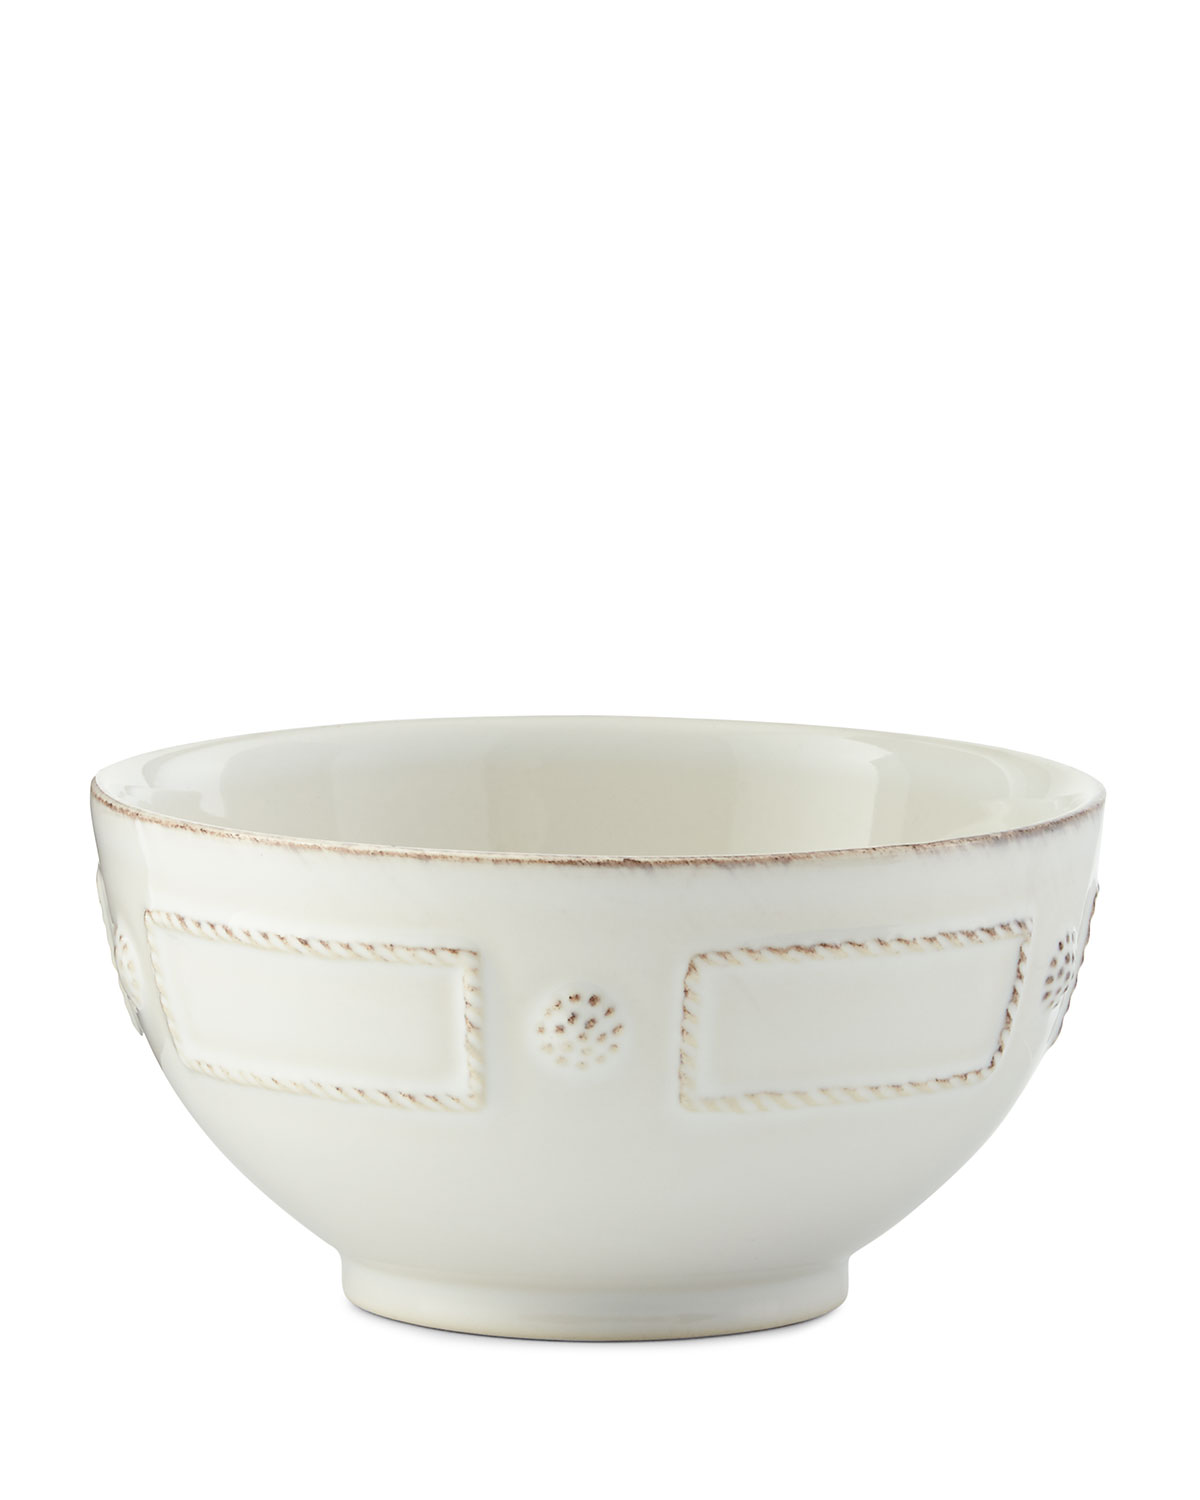 Juliska Berry & Thread French Panel Whitewash Cereal/Ice Cream Bowl